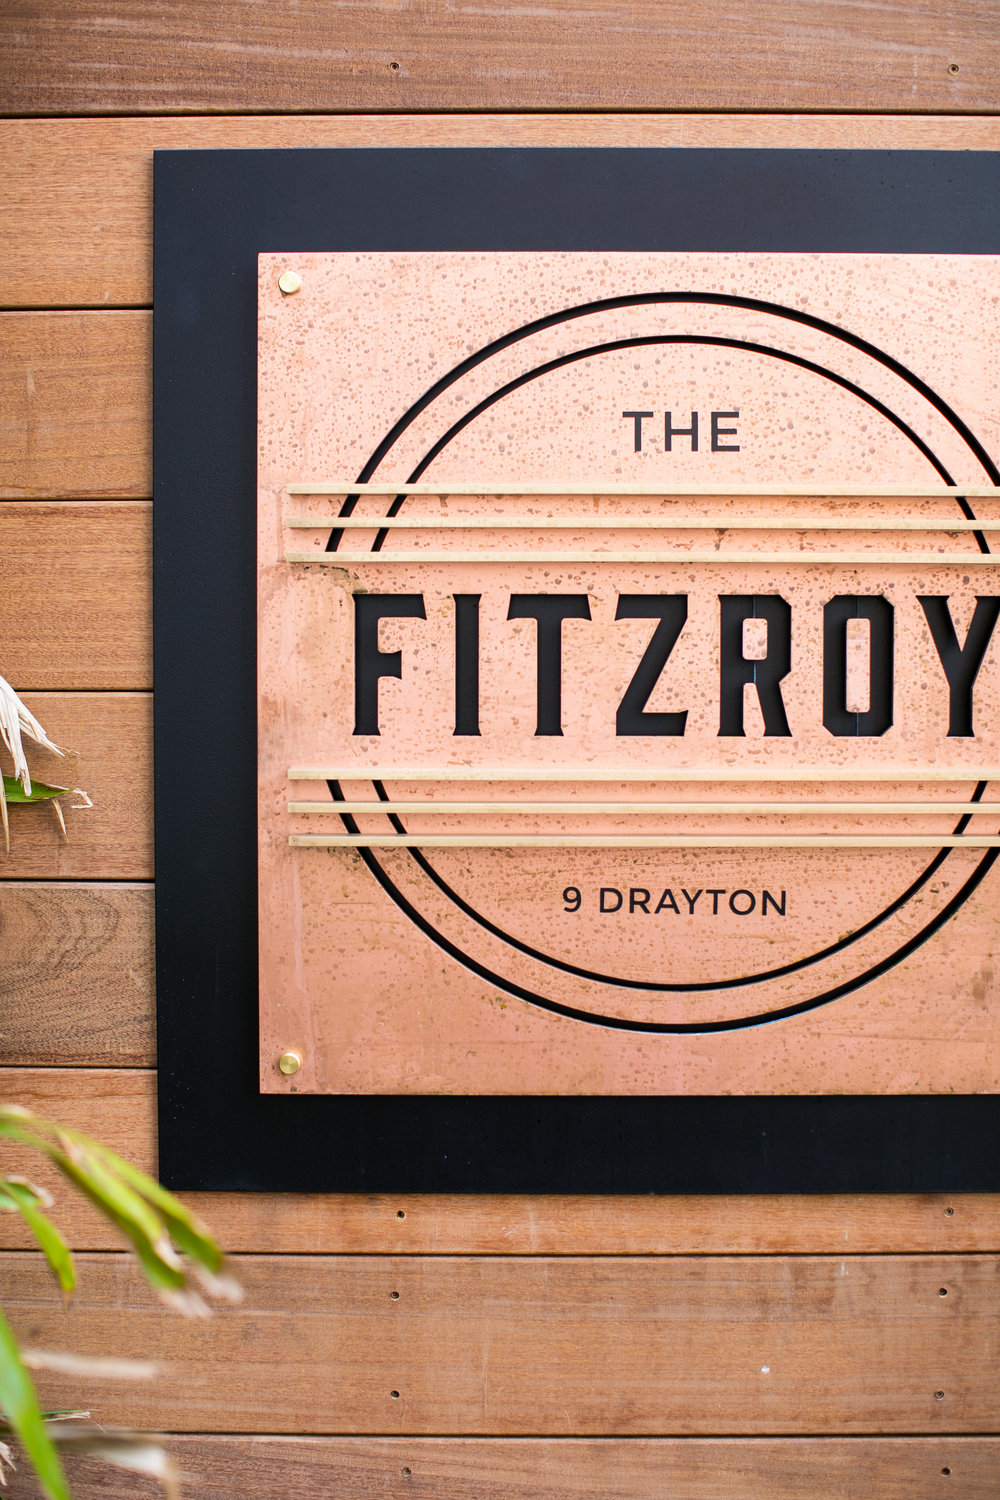 The Fitzroy on Drayton Street ©Teresa Earnest